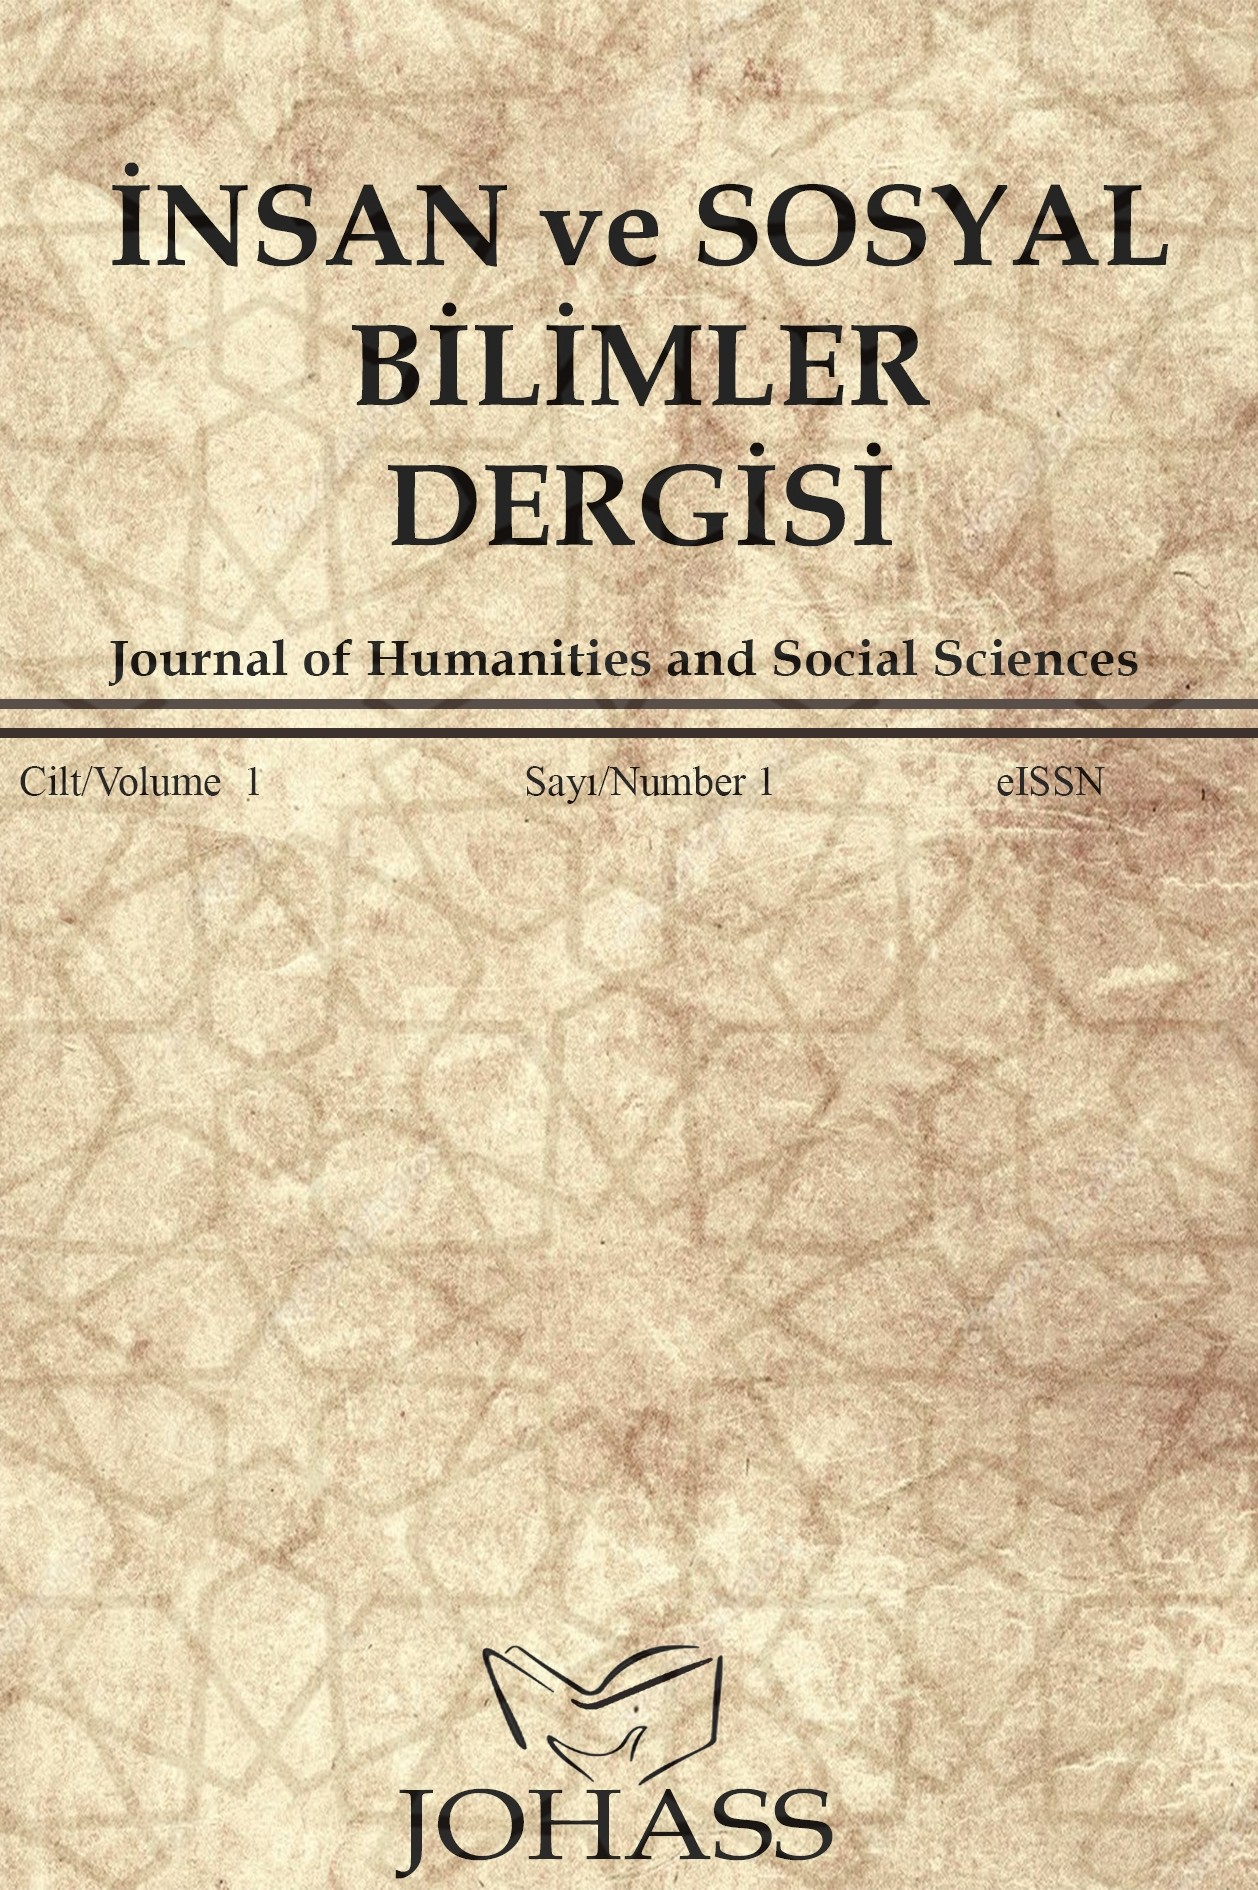 Journal of Human and Social Sciences